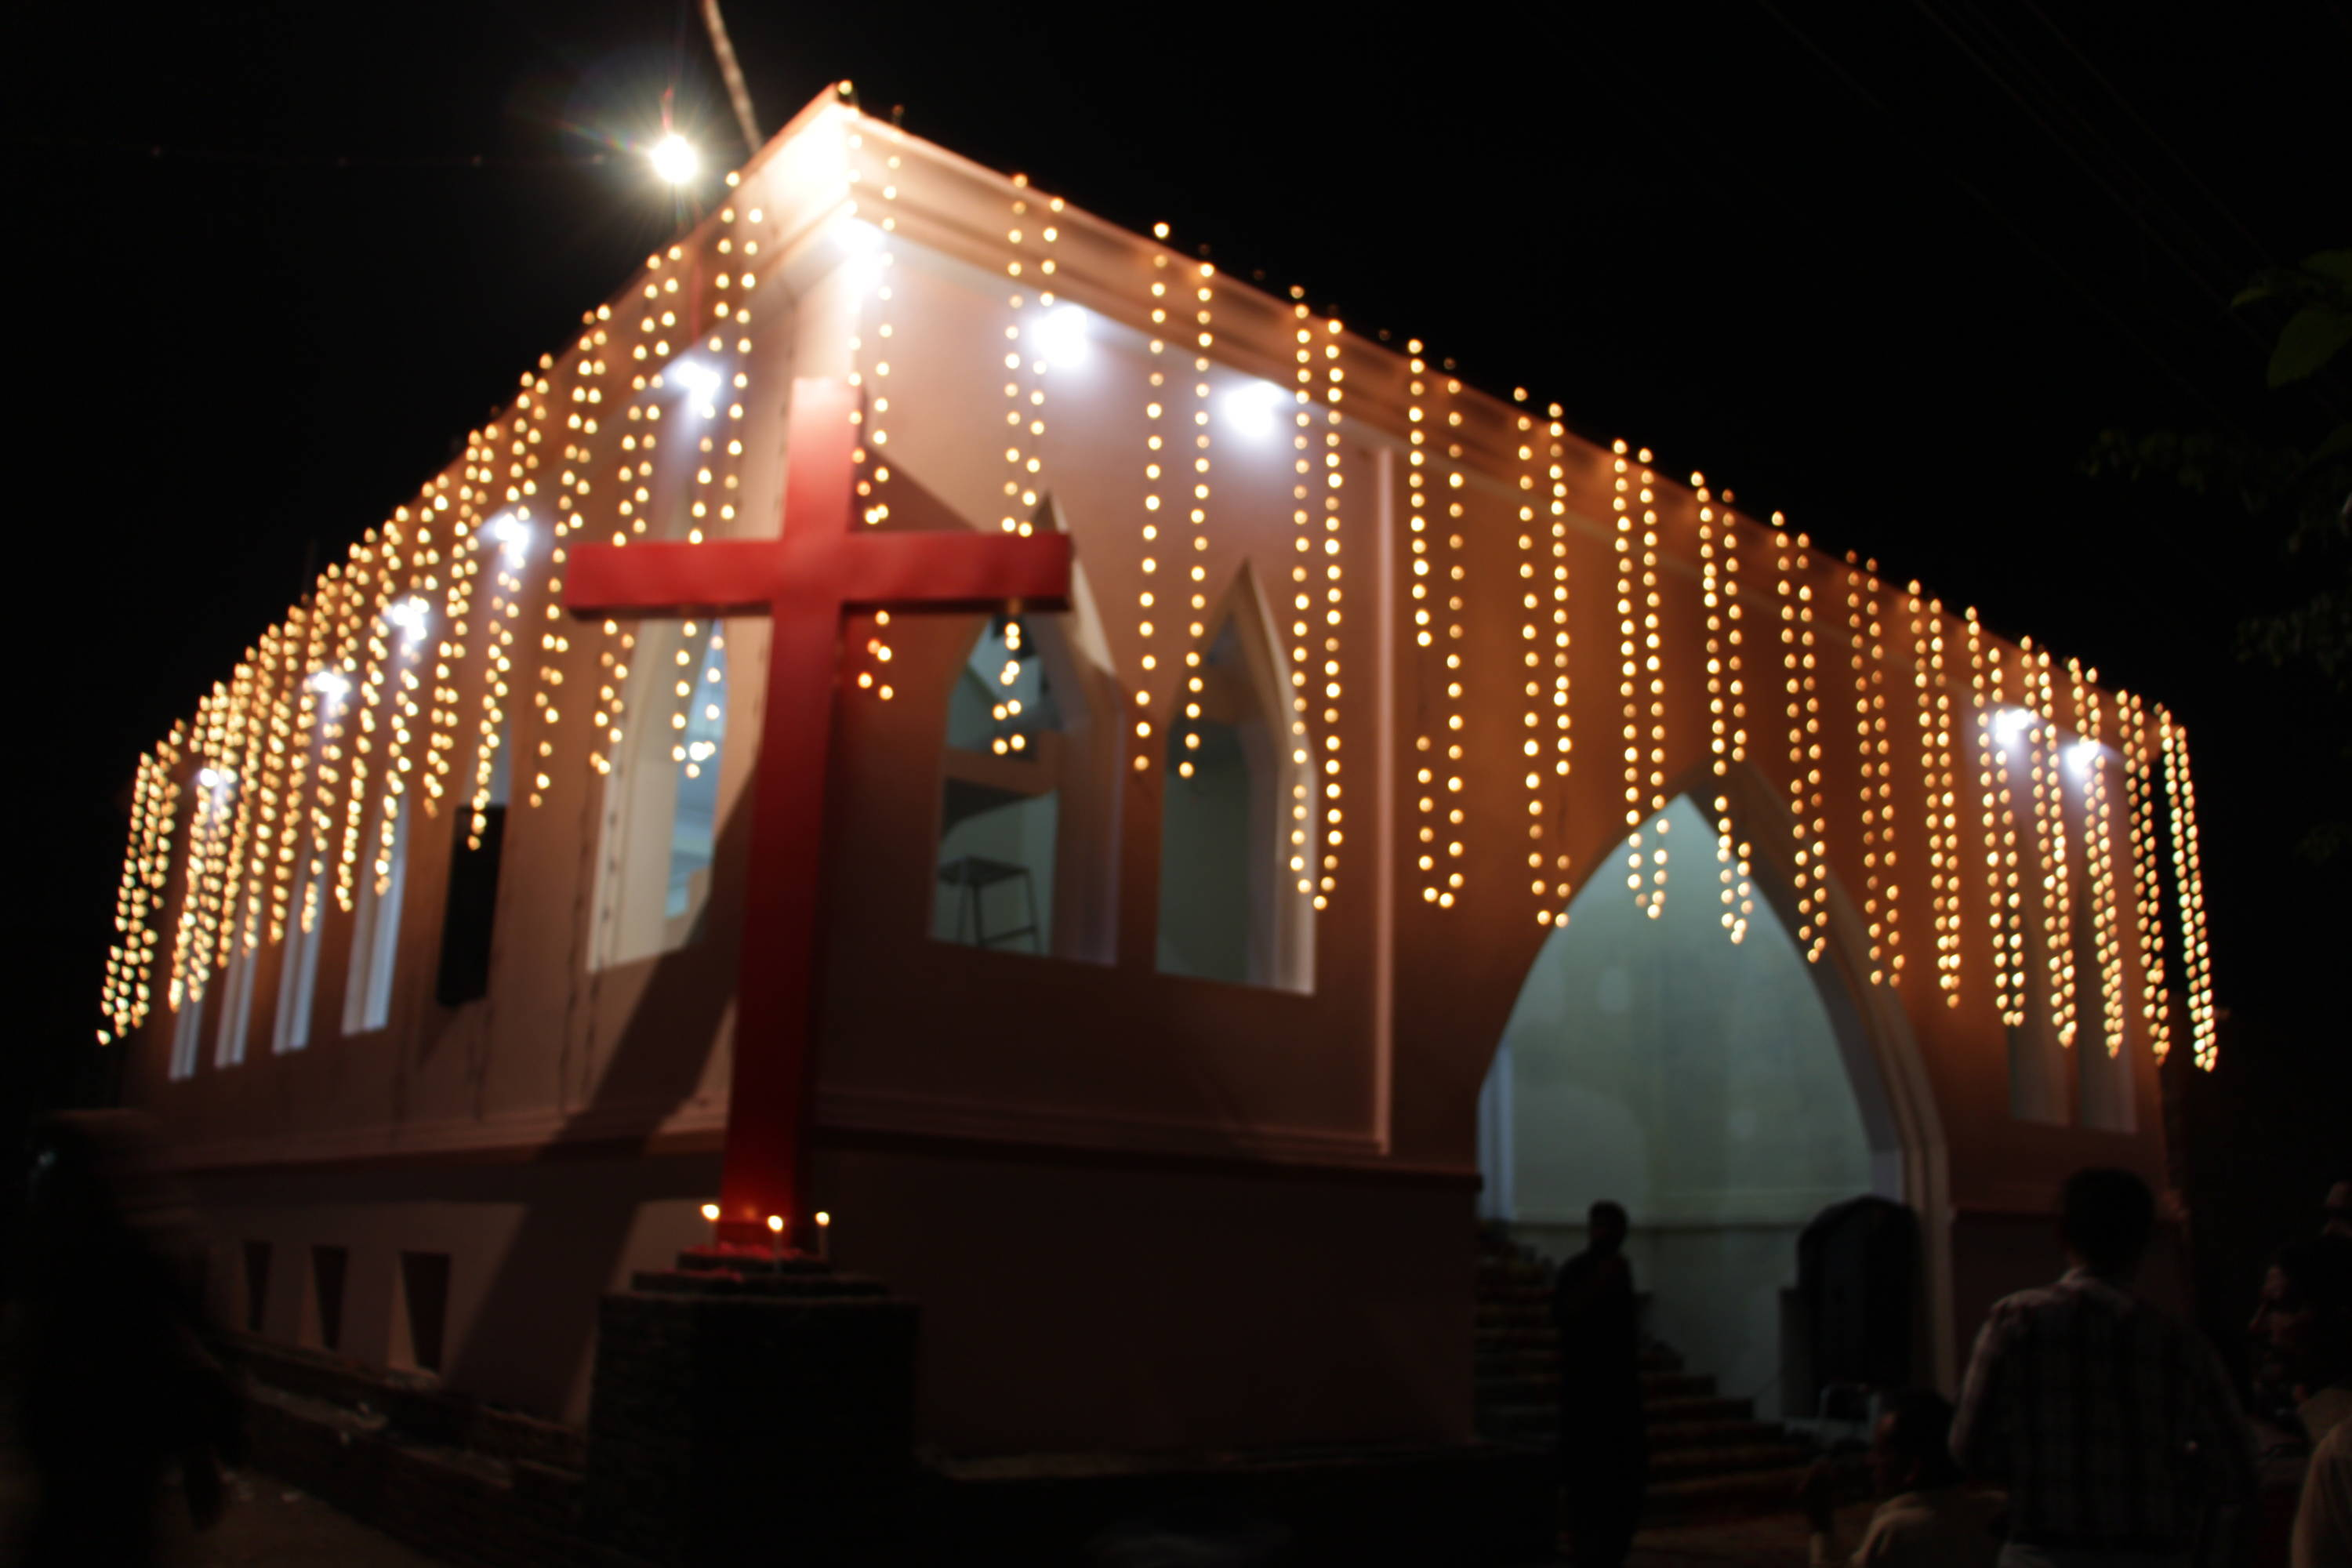 Photo: The Smyrna Church in Pakistan Must be the Most Beautiful in the Country